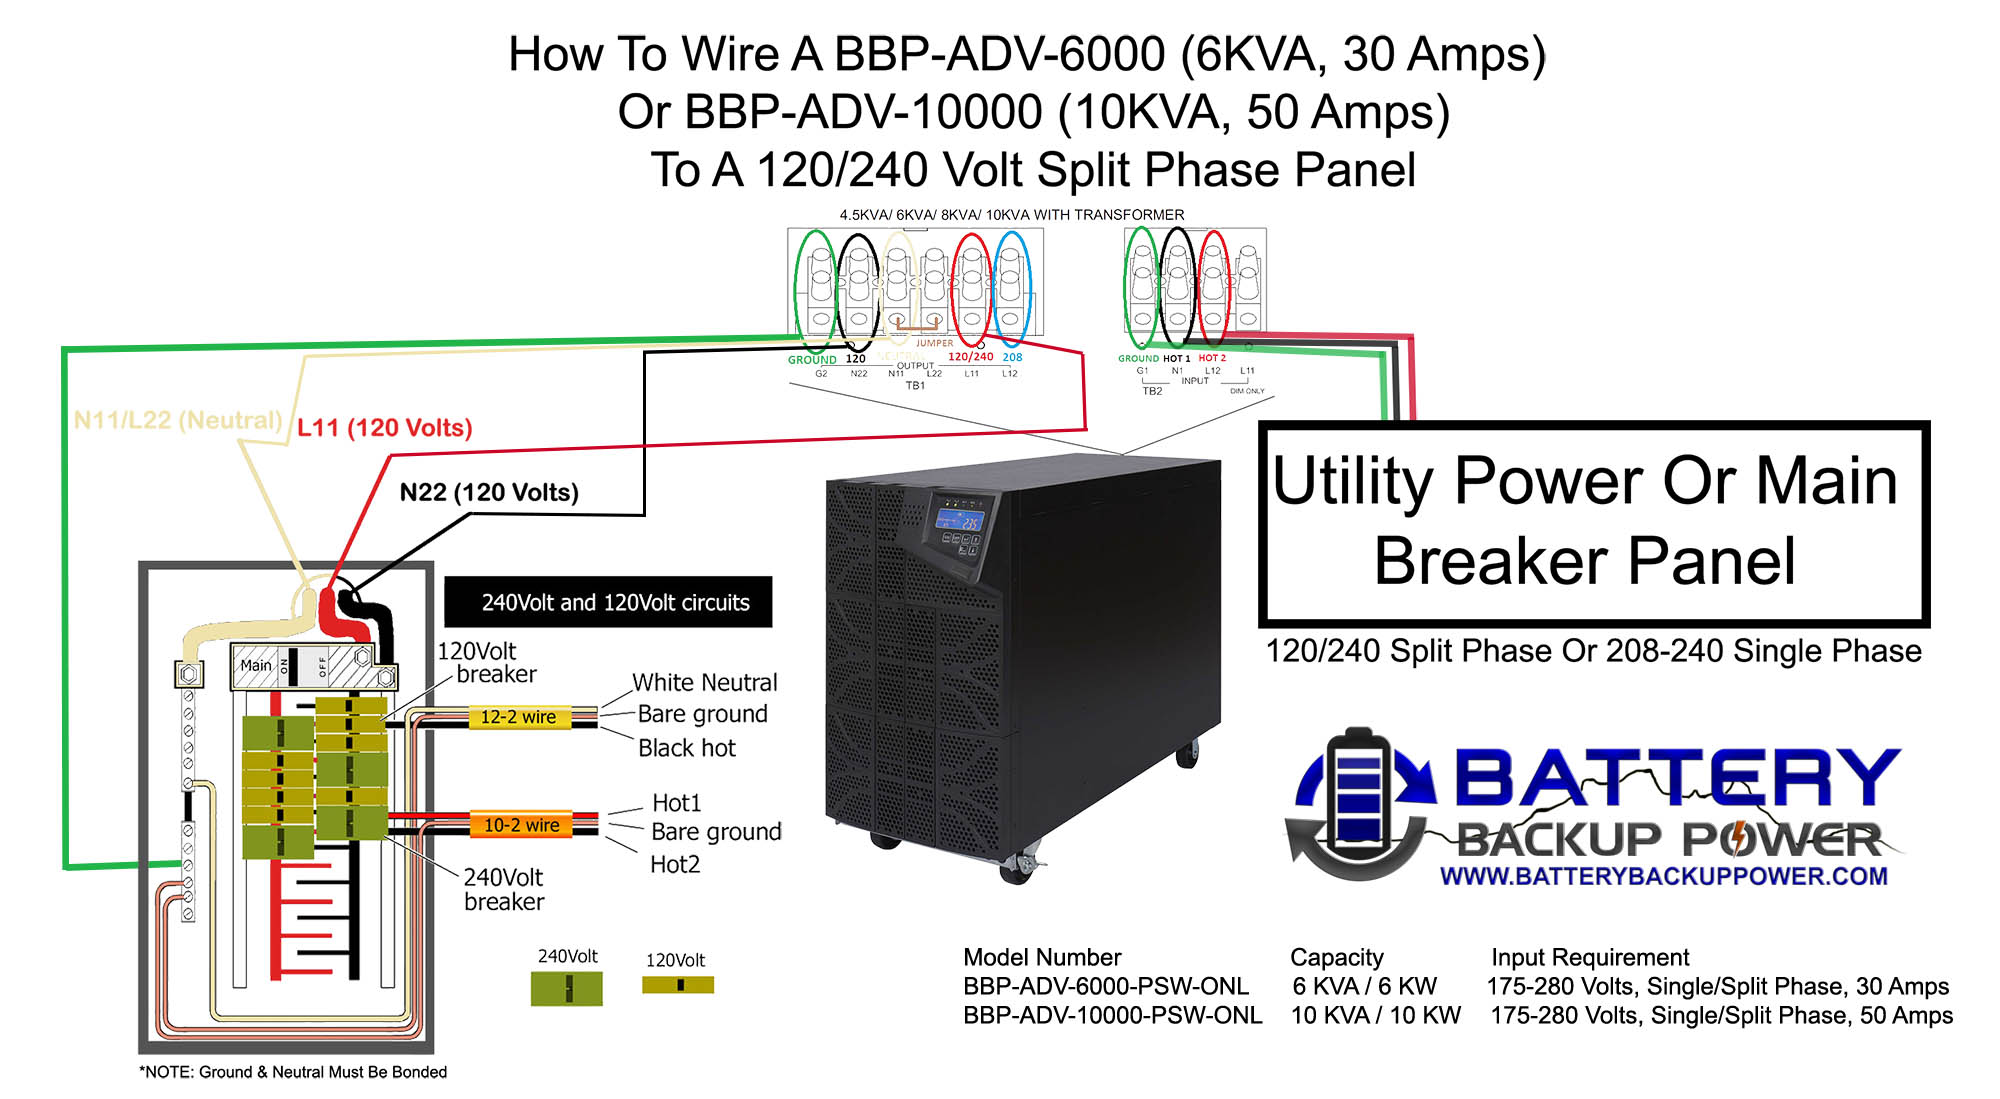 [SCHEMATICS_48EU]  Wiring Diagrams For Hardwire UPS – Battery Backup Power, Inc. | 208 Volt Wiring Diagram |  | Battery Backup Power, Inc.